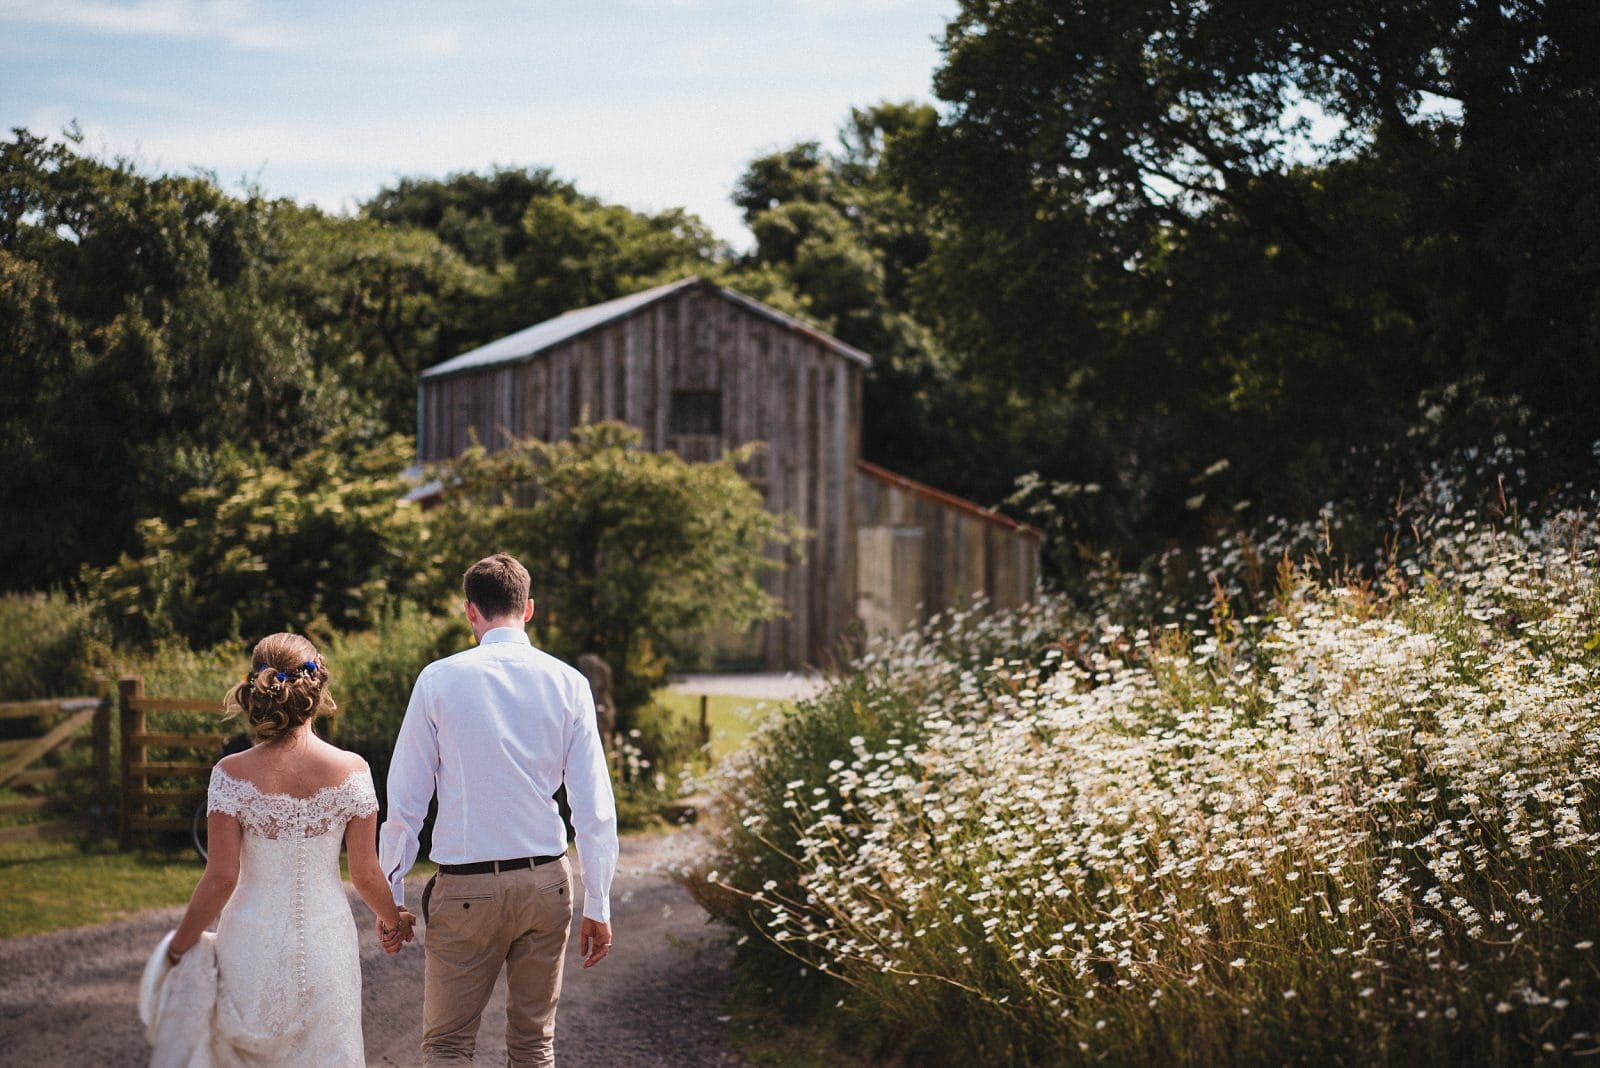 The bride and groom walk towards the Rusty Barn at Nancarrow Farm on their wedding day